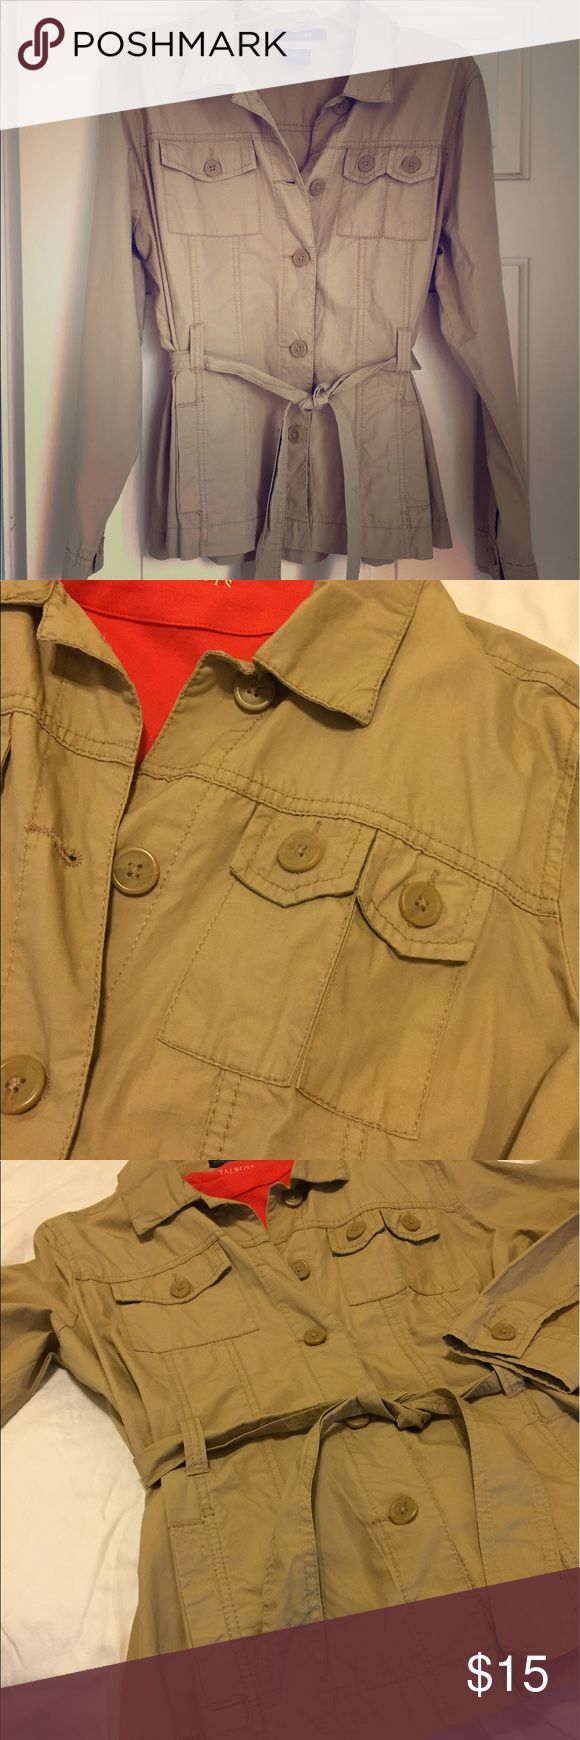 Lightweight khaki utility jacket from French Cuff Versatile belted jacket. A staple for every wardrobe. French Cuff Jackets & Coats Utility Jackets